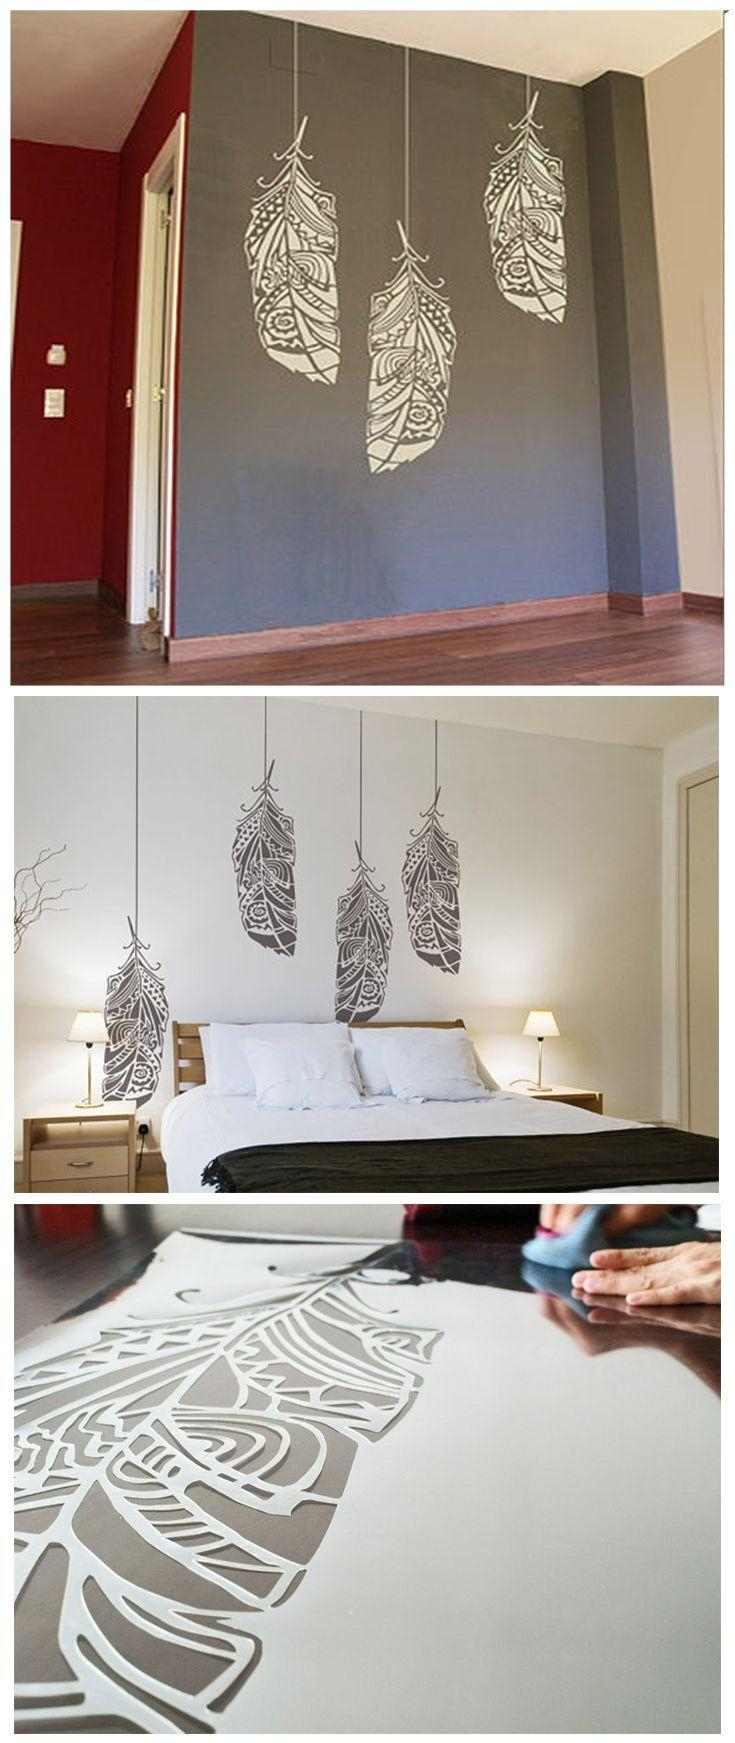 12 Awesome Wall Décor Ideas To Make Up Your Home | Ethnic Decor With Stencil Wall Art (Image 1 of 20)